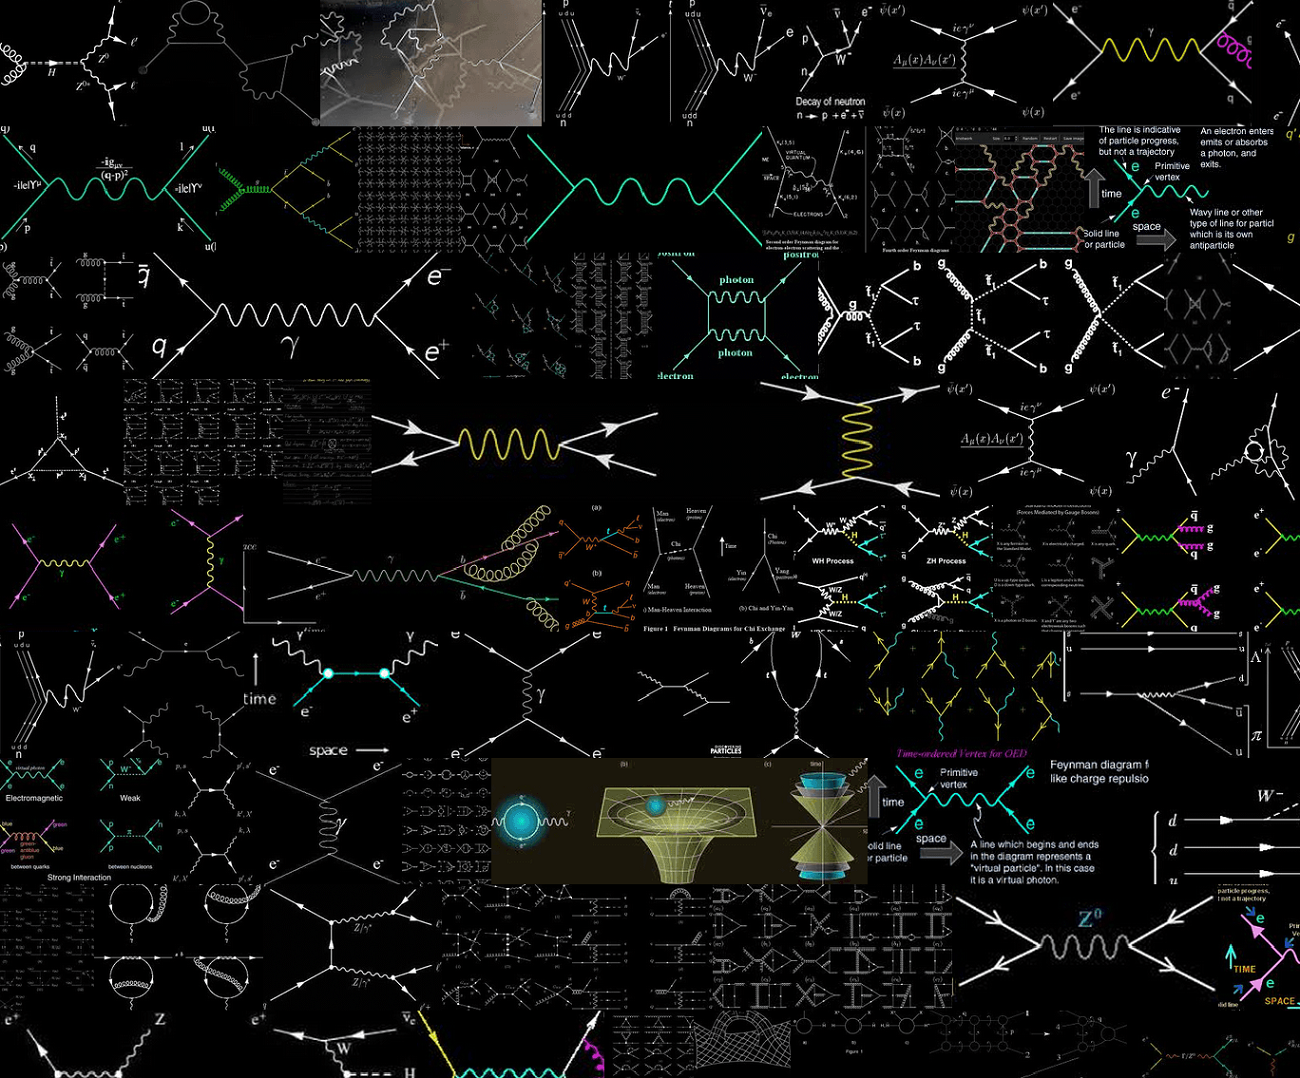 Feynman Diagrams Wallpaper